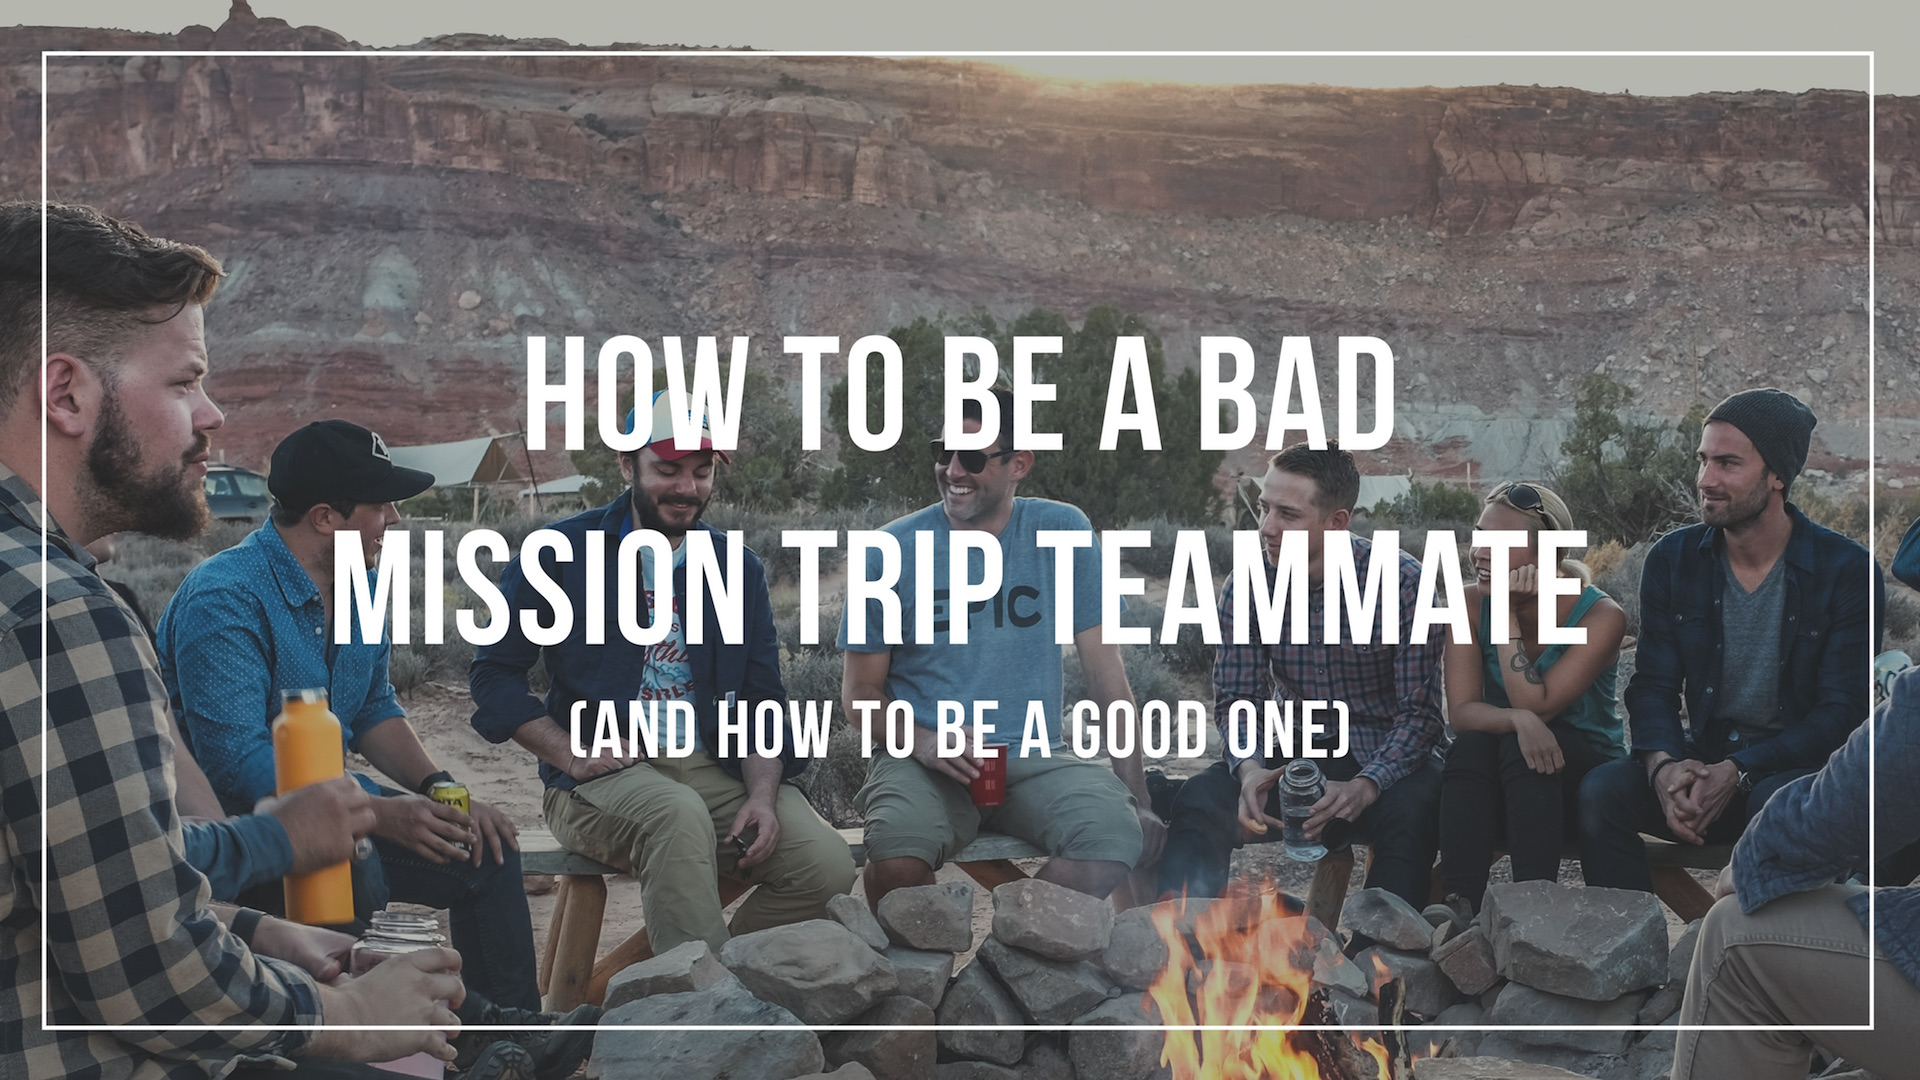 How to be a bad mission trip teammate (and how to be a good one)